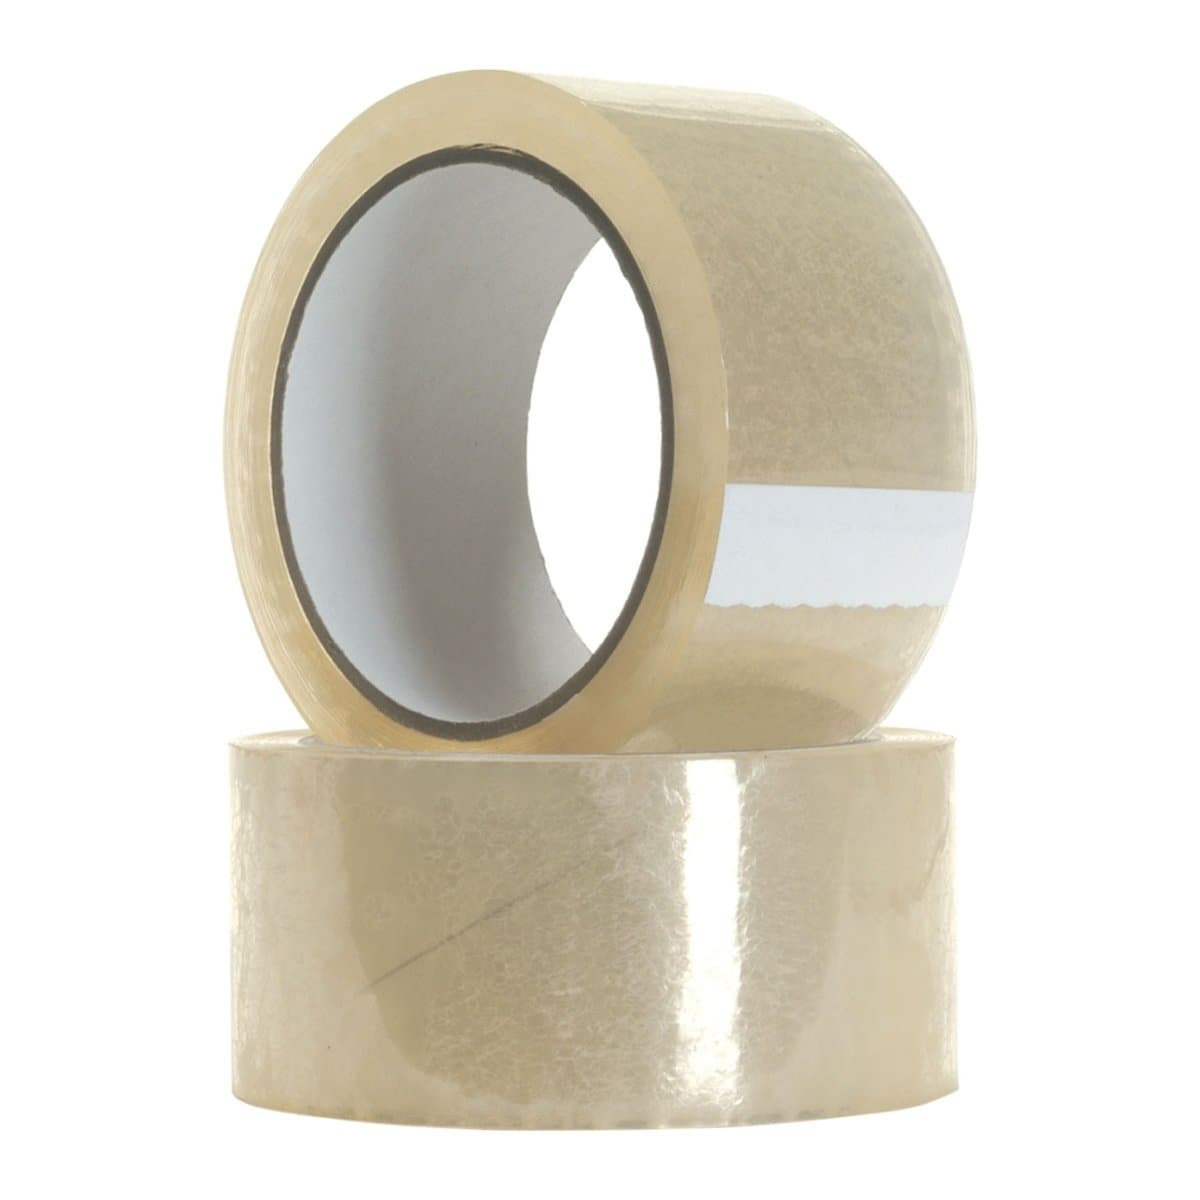 Fantastic Clear Packing Tape 2inches x 100yards